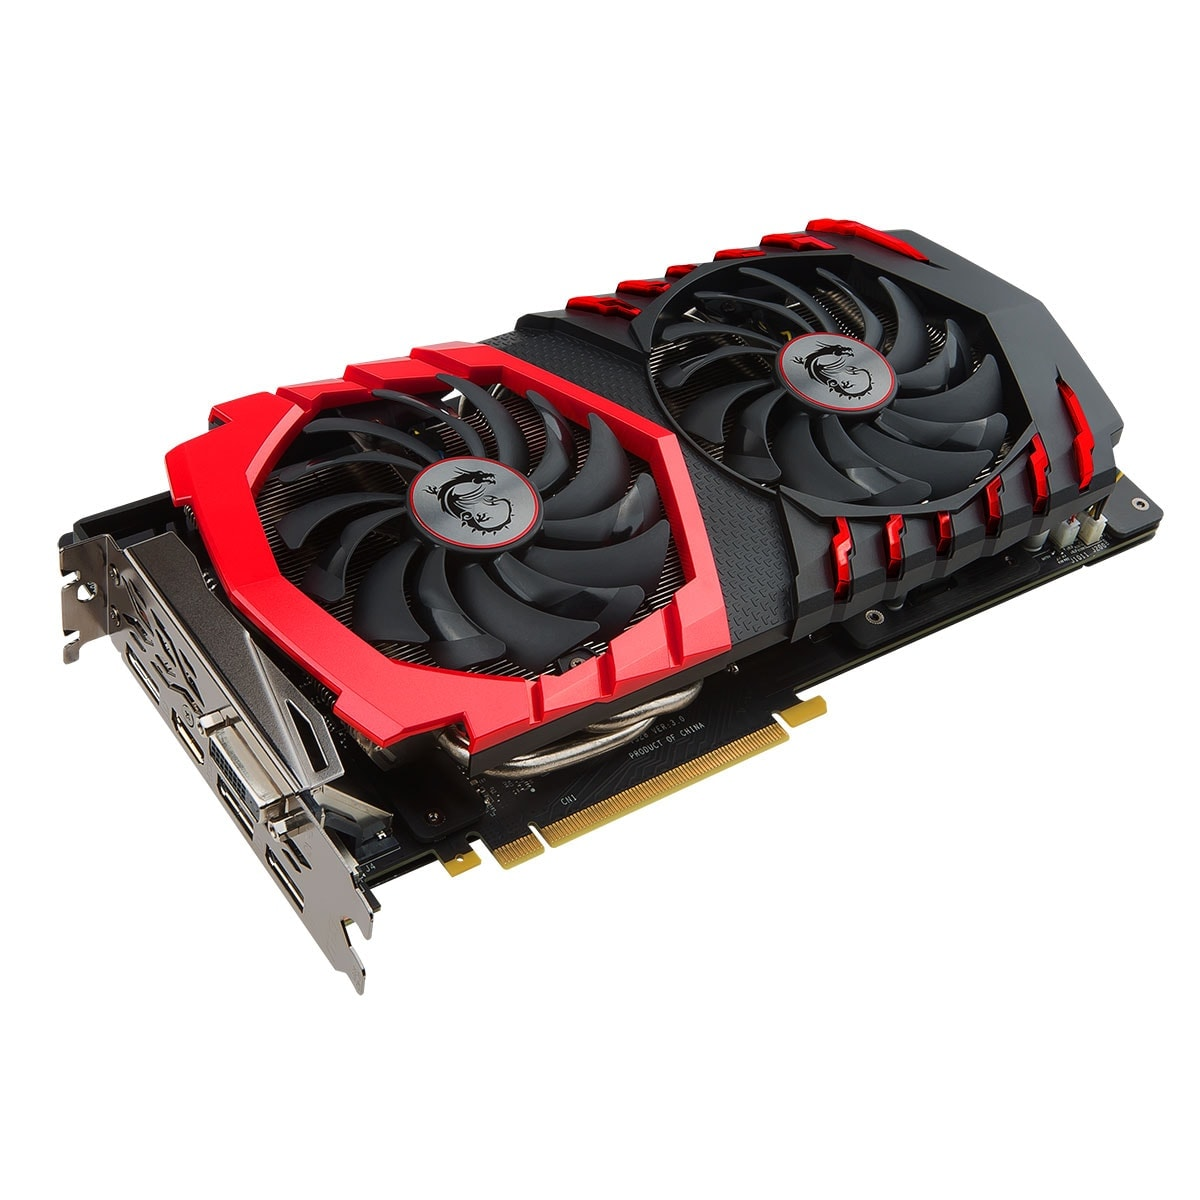 MSI GeForce GTX 1060 GAMING X 6G  (GeForce GTX 1060 GAMING X 6G ) - Achat / Vente Carte Graphique sur Cybertek.fr - 1